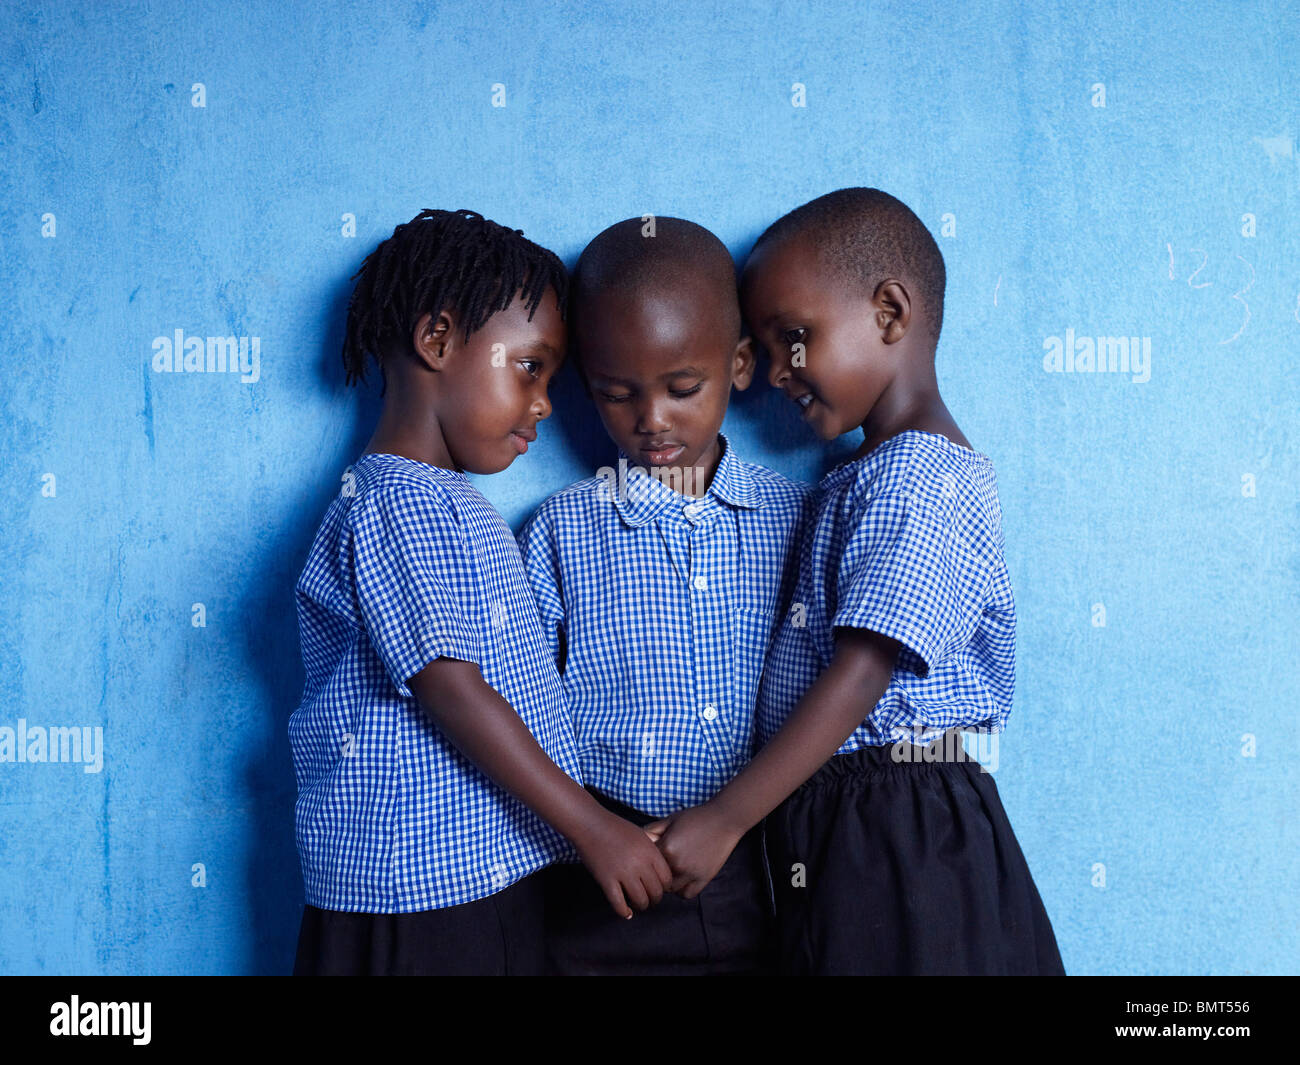 Three African children holding hands after the Rwandan genocide. - Stock Image